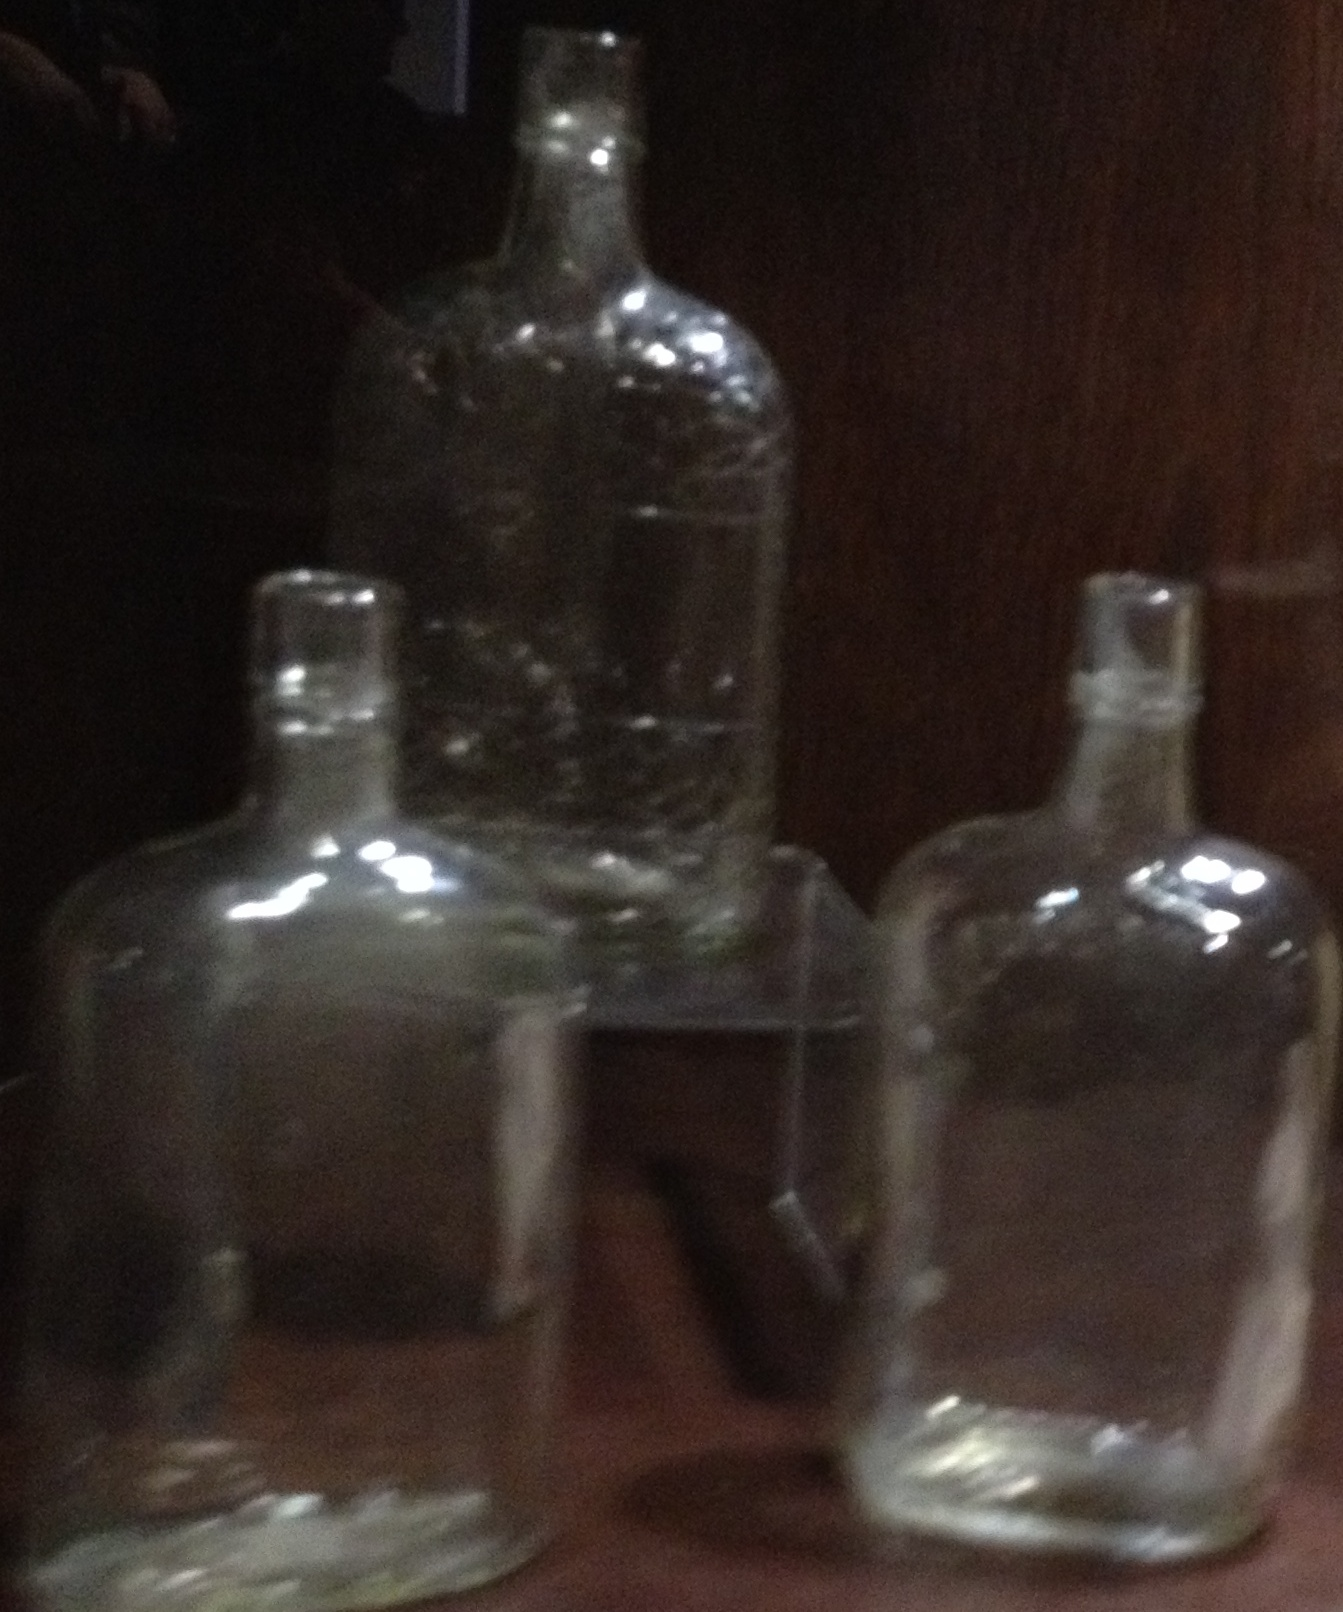 Prohibition ends in 1933. Fremont Street is stunned to discovery that whiskey had been illegal. Many years later, during a renovation, construction workers would find these whiskey bottles hidden in the walls of the Golden Gate. The bottles are now on display in the hotel's lobby.